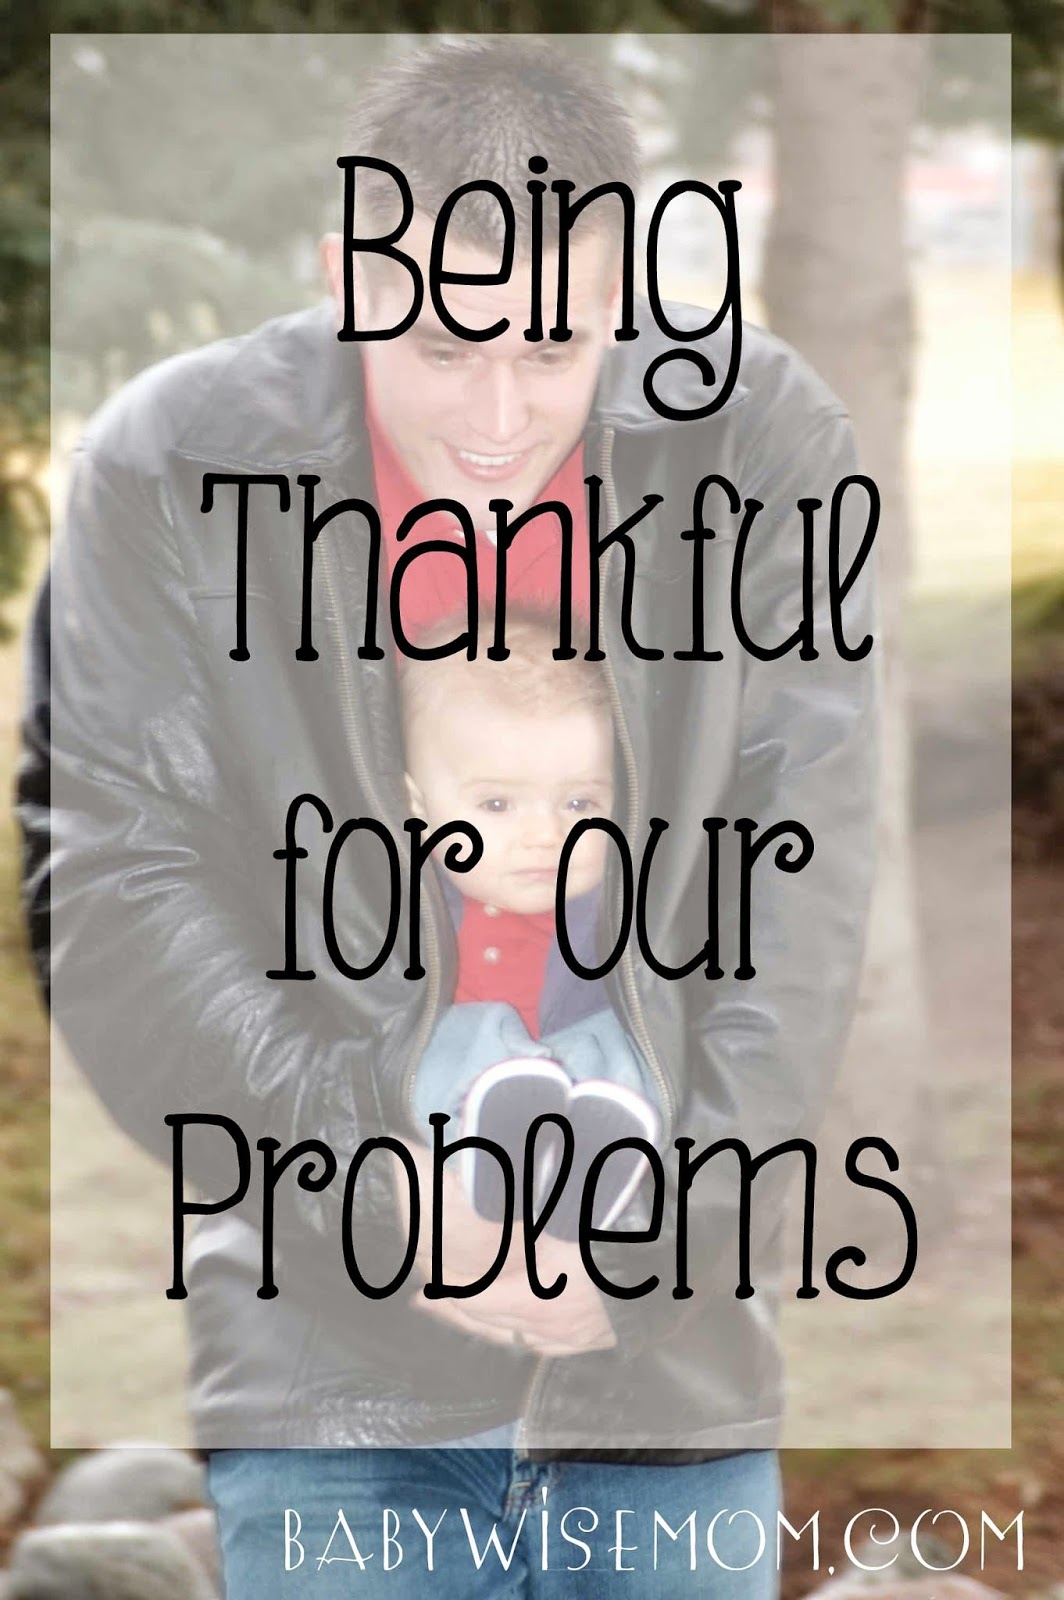 Being Thankful for Our Problems